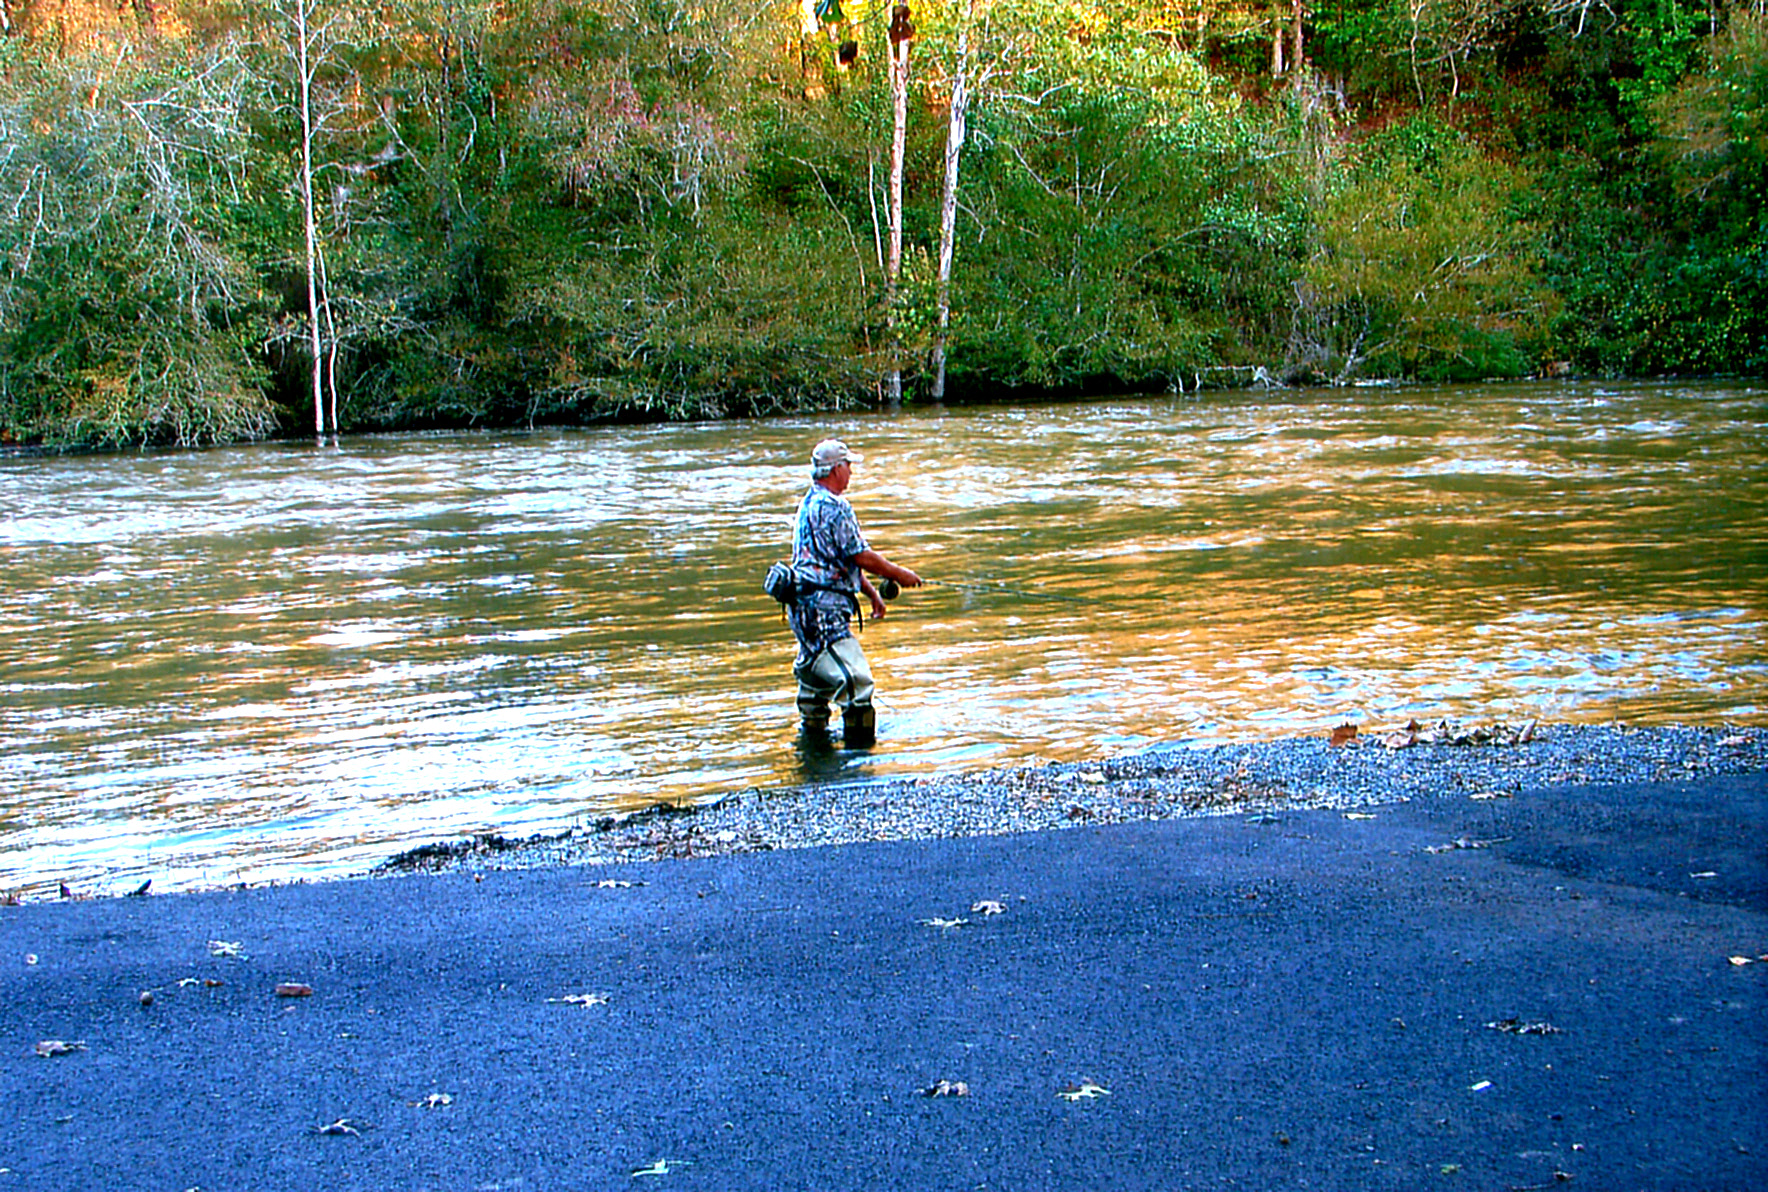 Fishing on the Cossatot River.